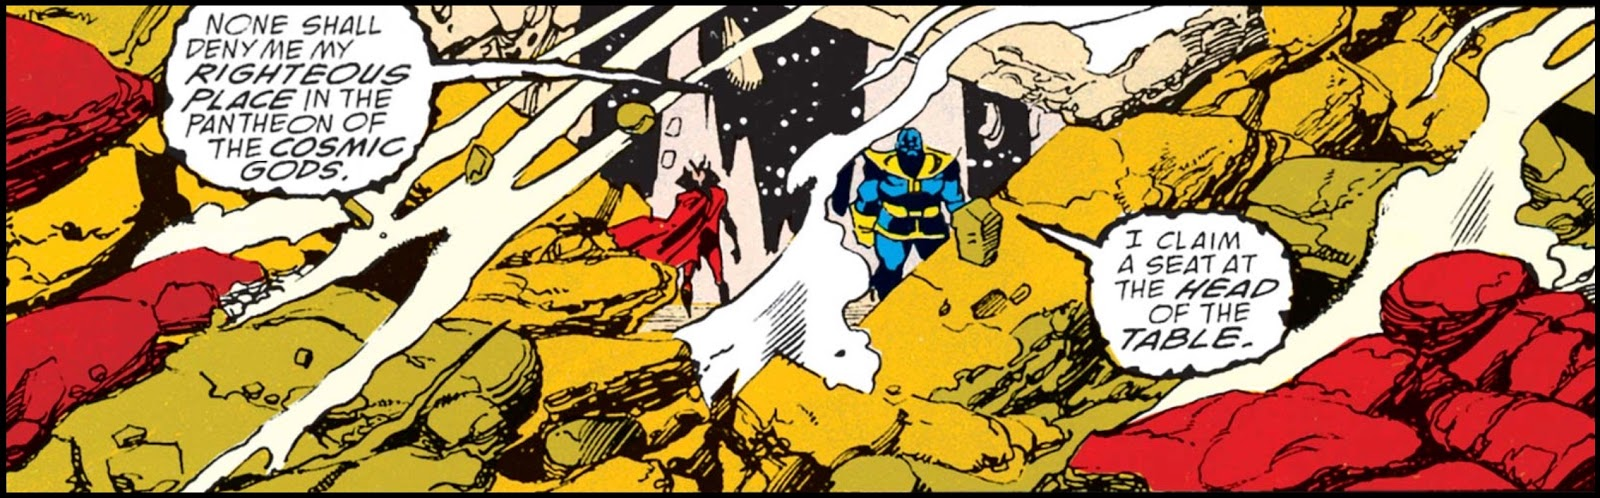 'None shall deny my righteous place in the pantheon of the cosmic gods,' Thanos says to Mephisto